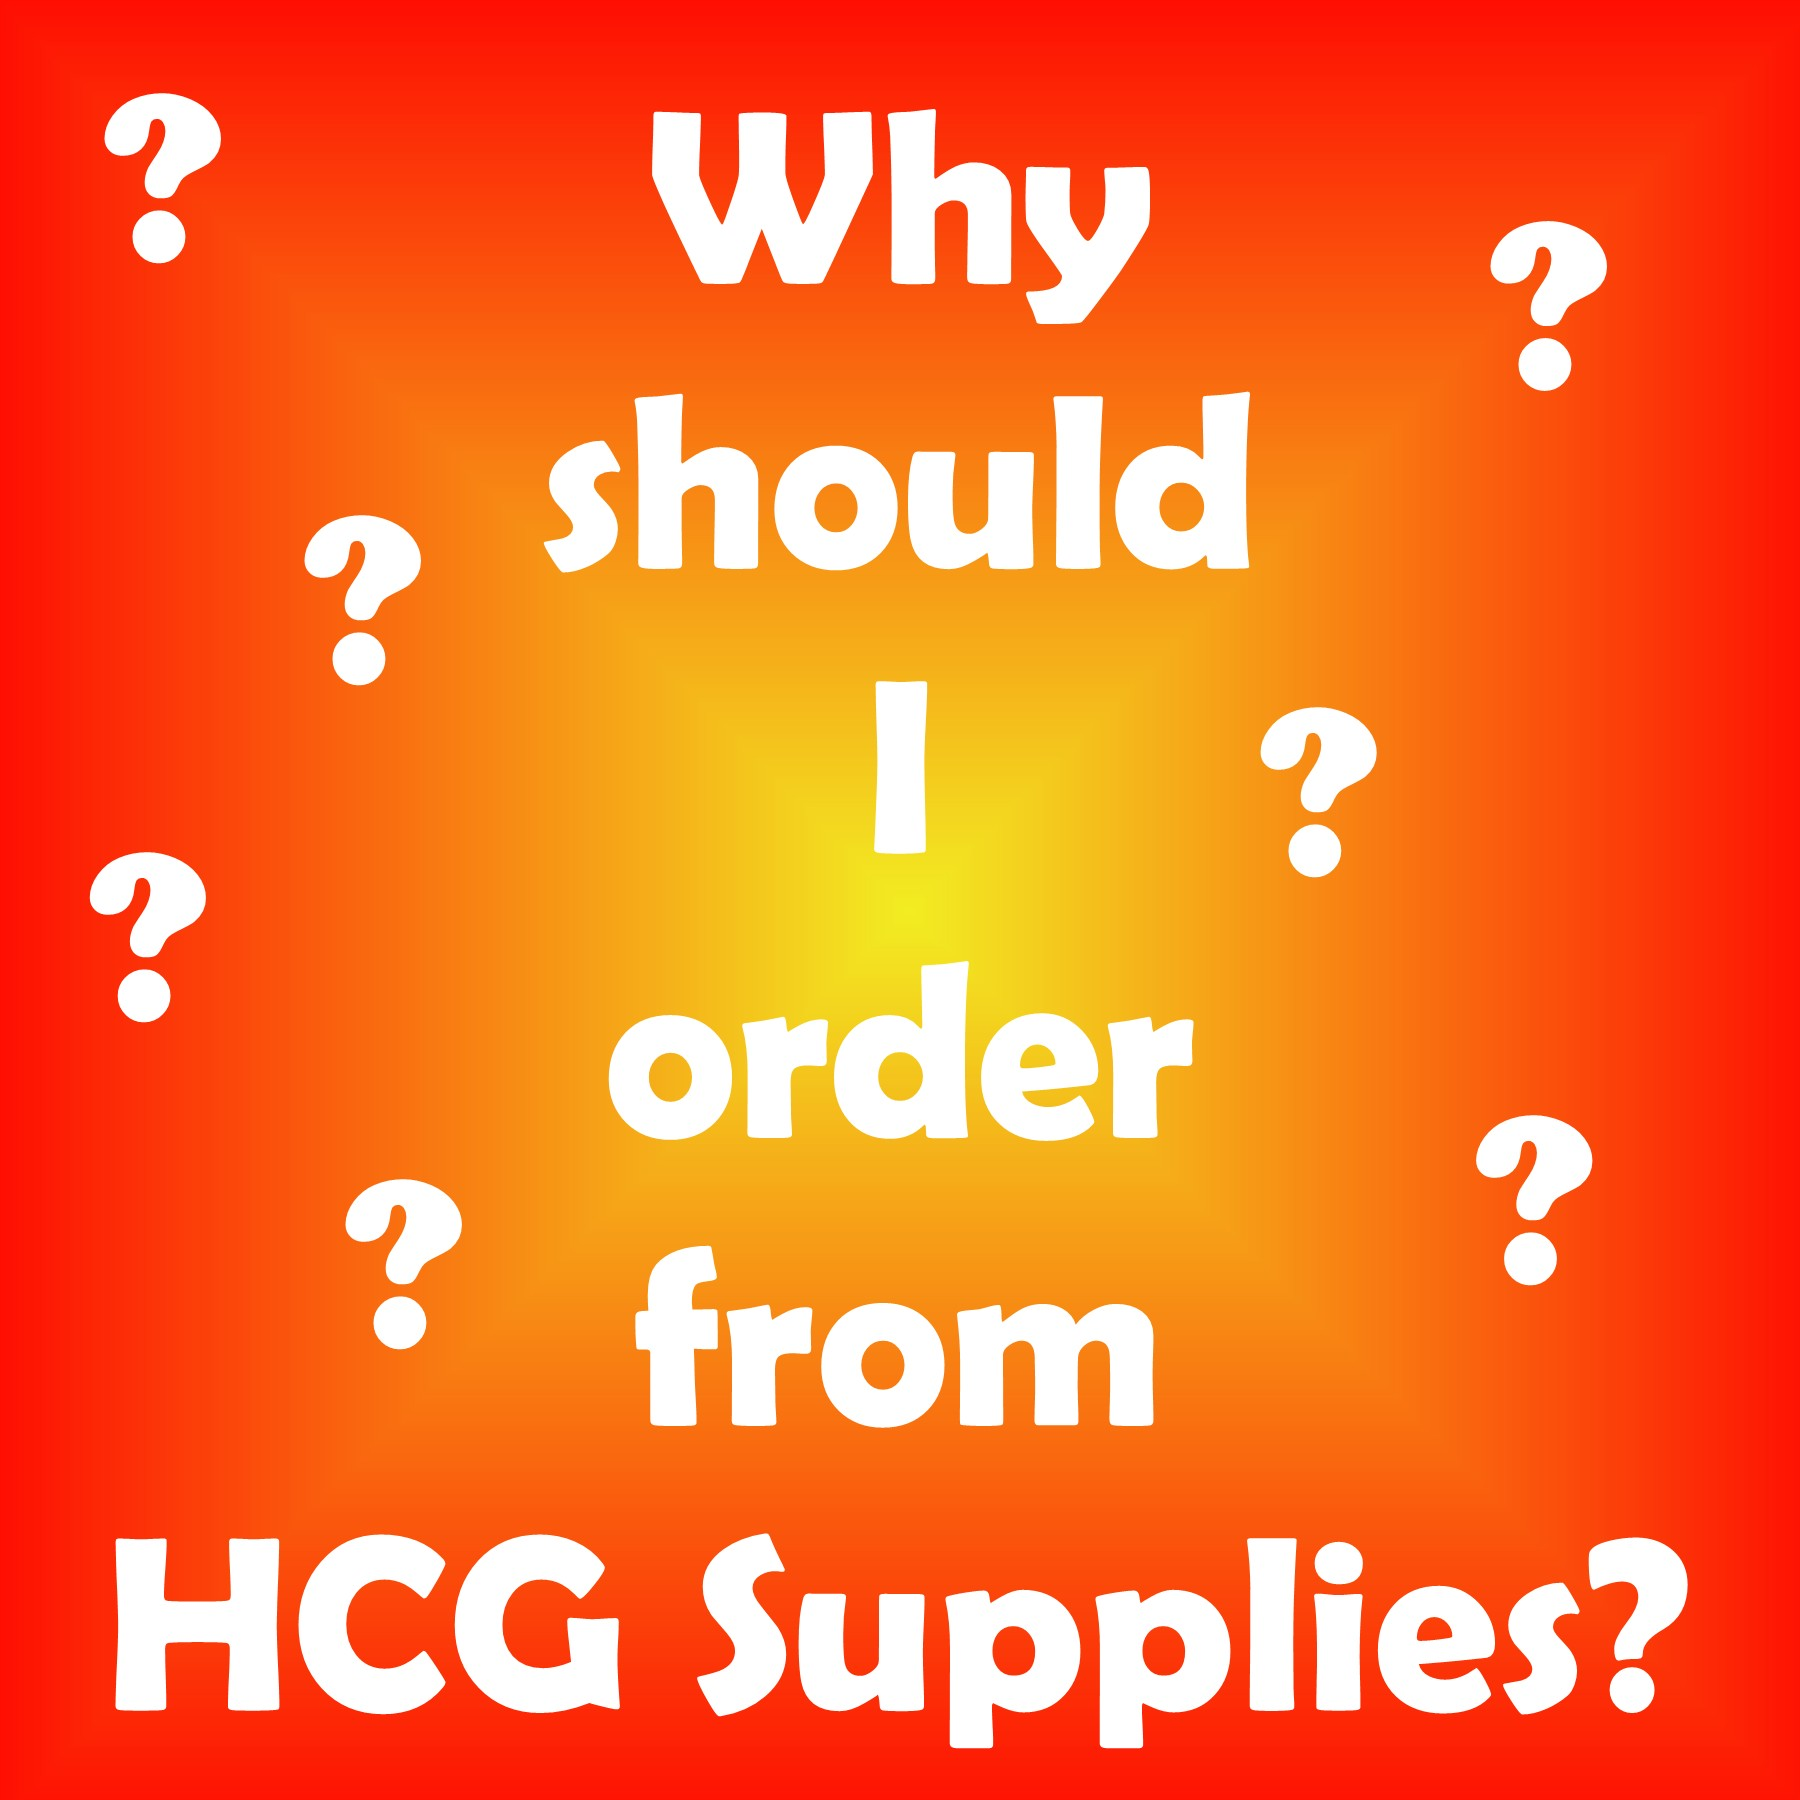 Why Order from HCG Supplies